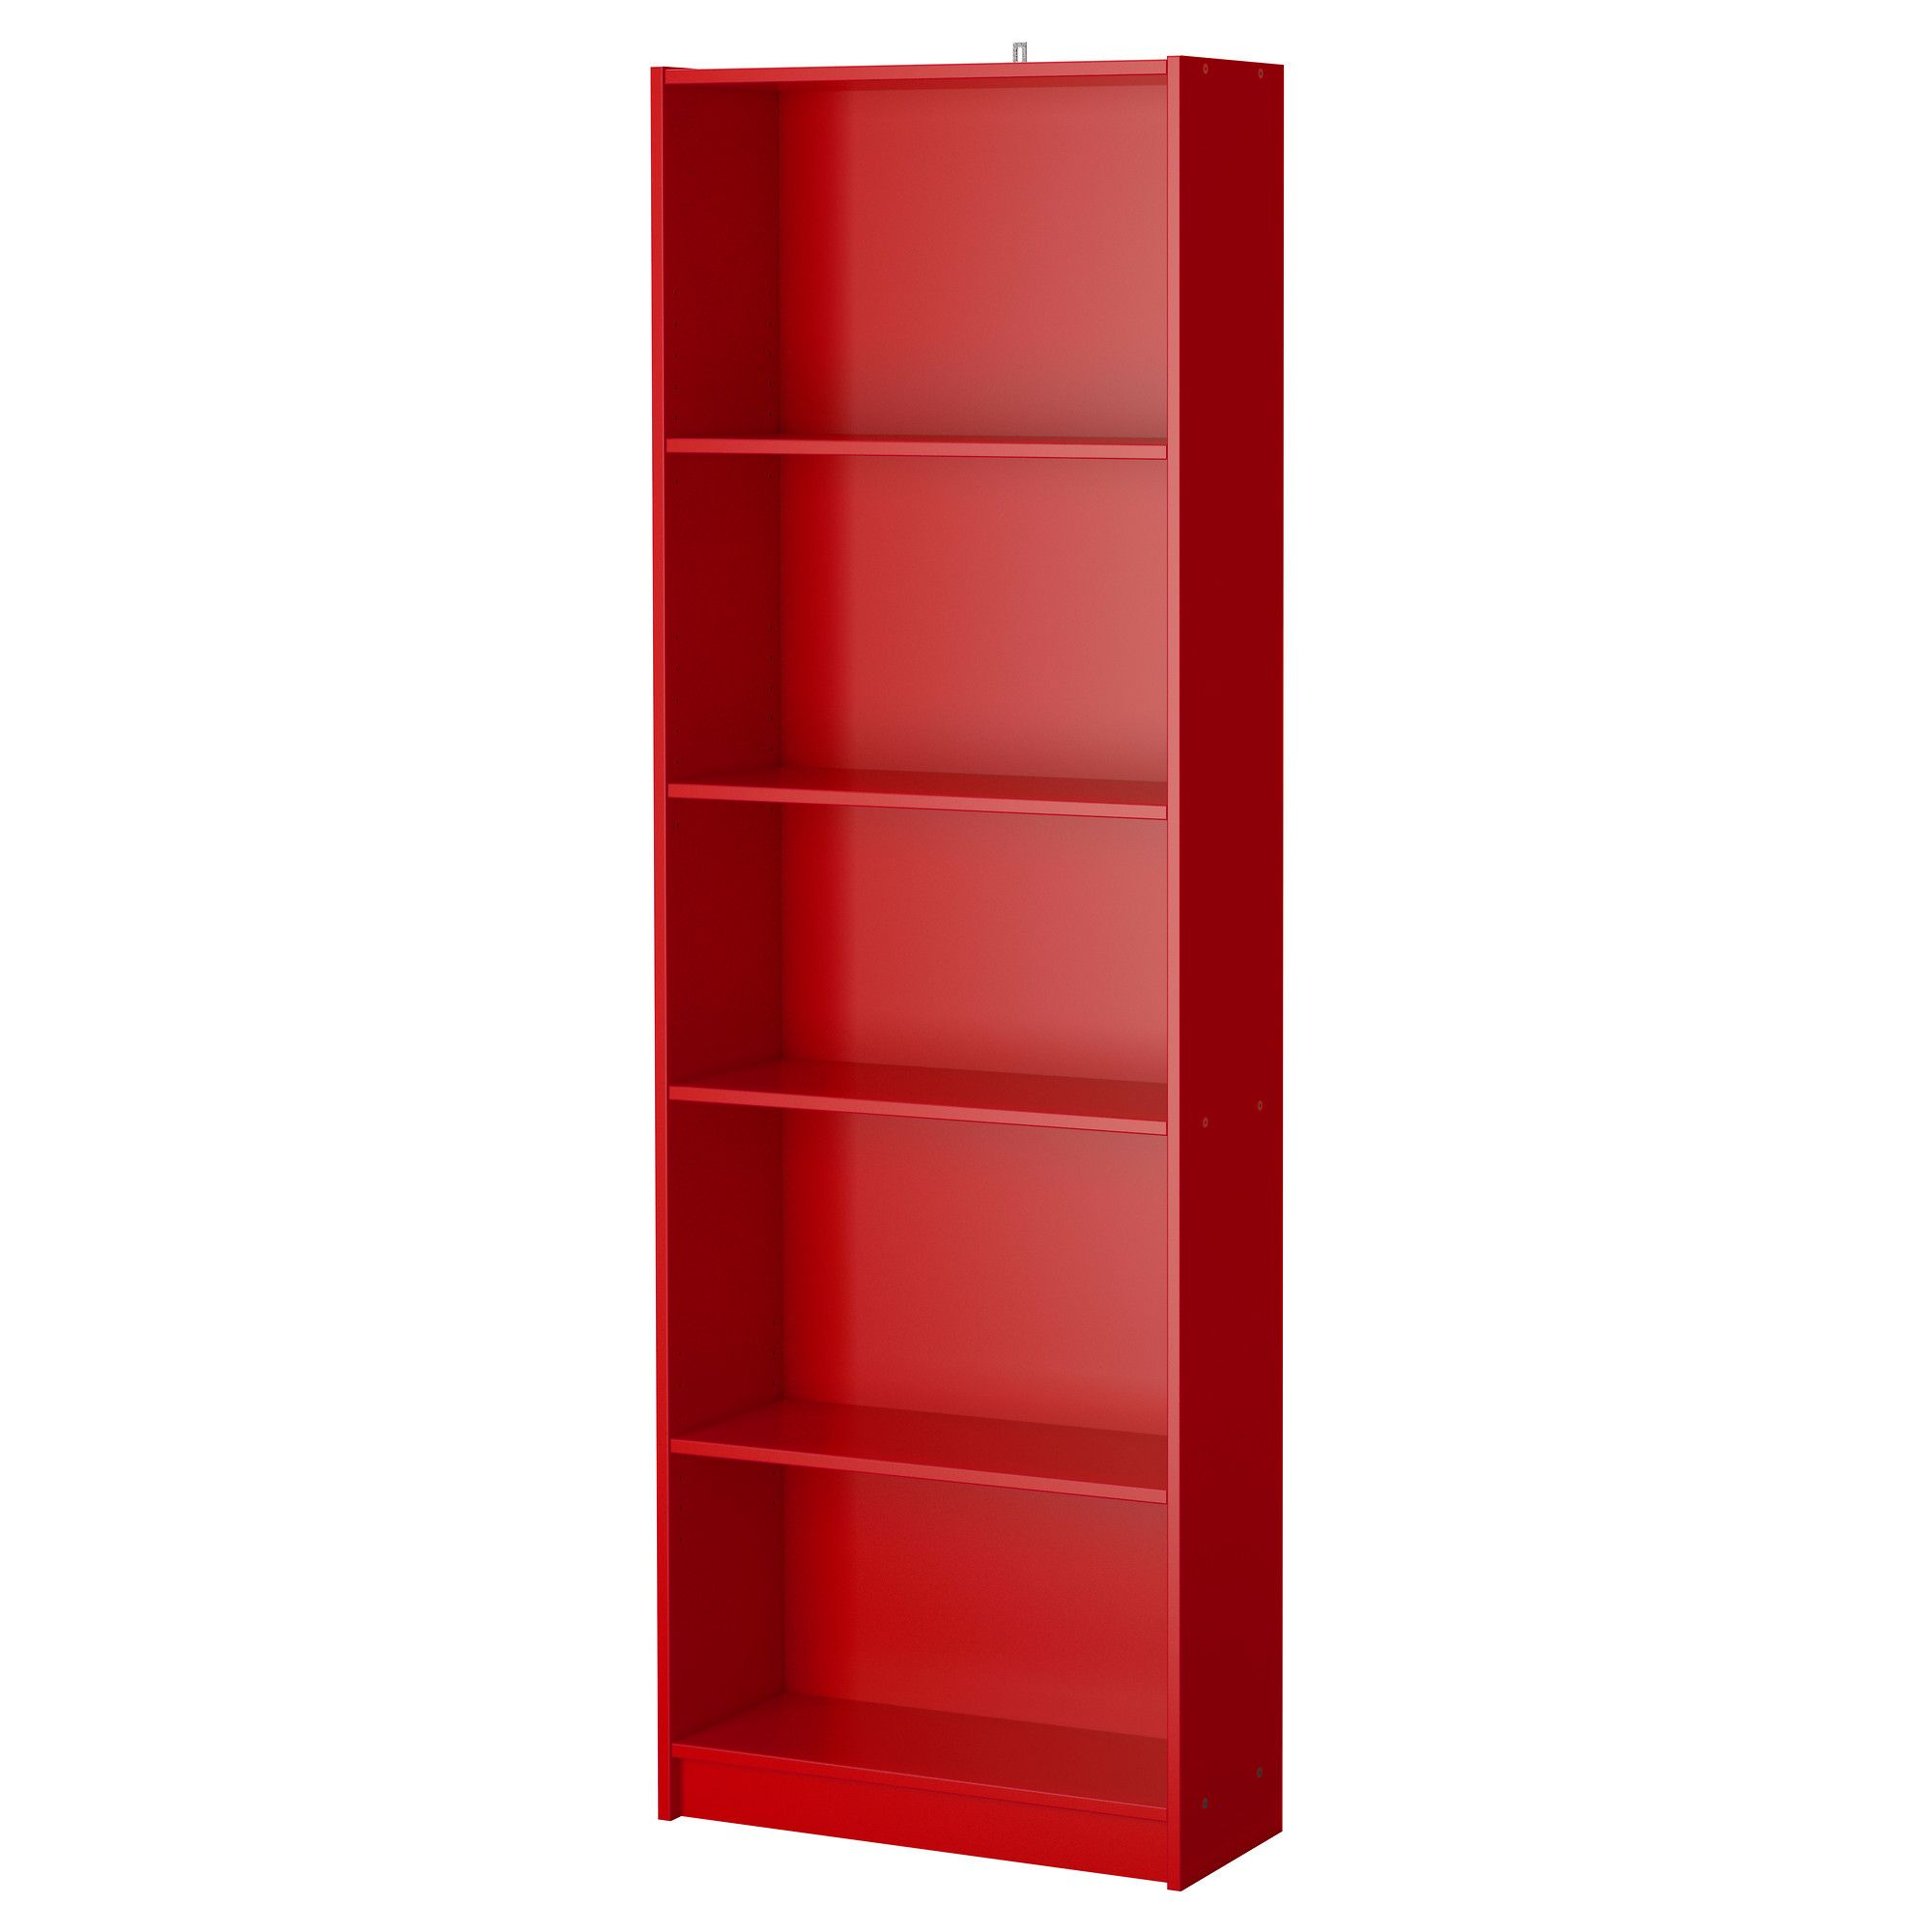 29 99 Finnby Bookcase Red Ikea Dimensions 23 5 8x70 7 8